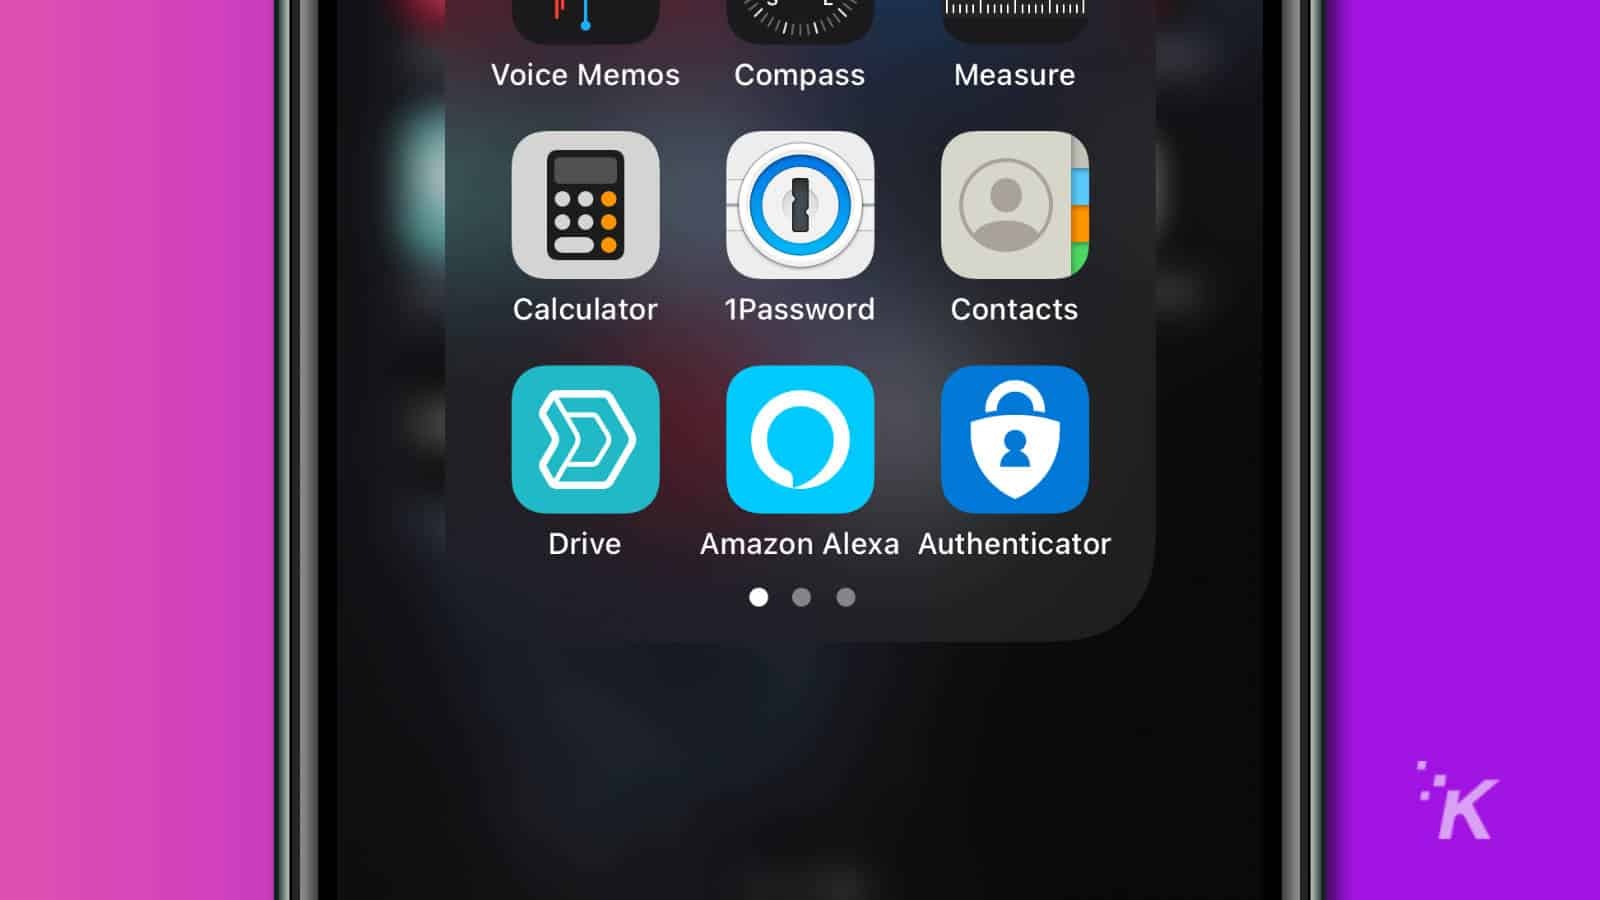 iphone home screen showing alexa app icon